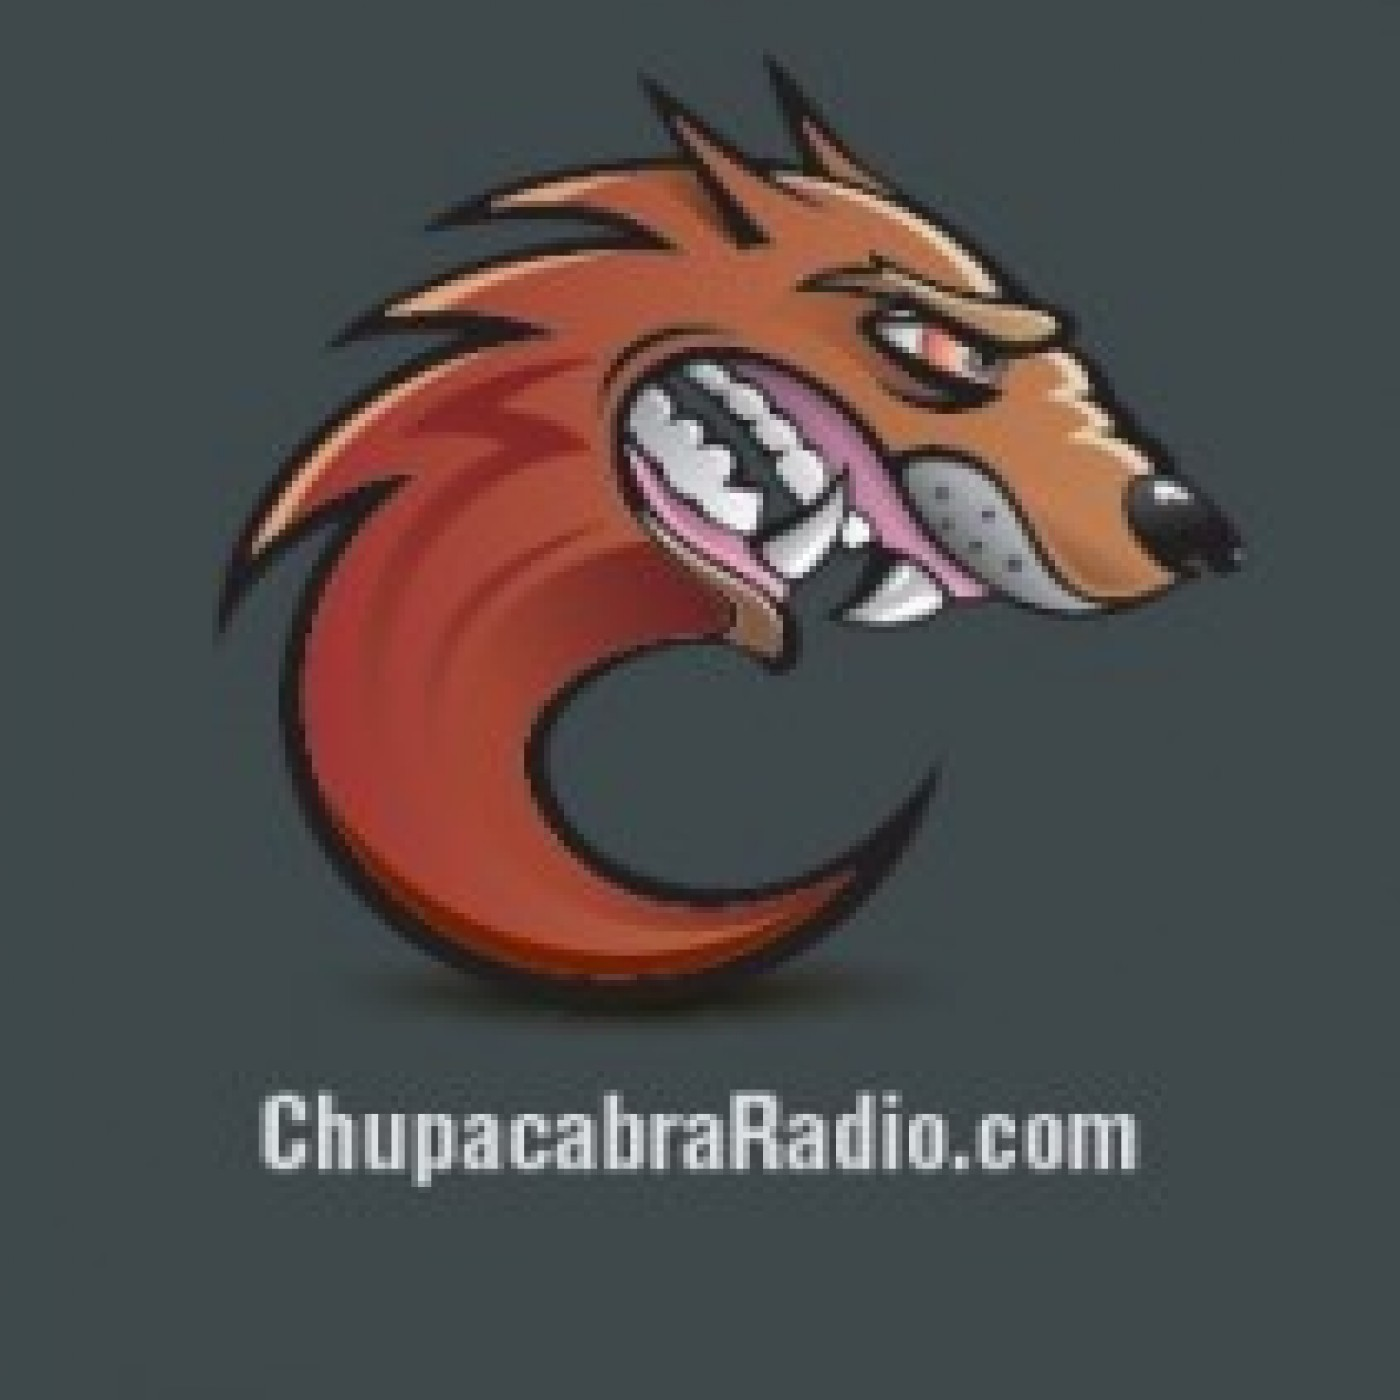 Chupacabra Radio Network